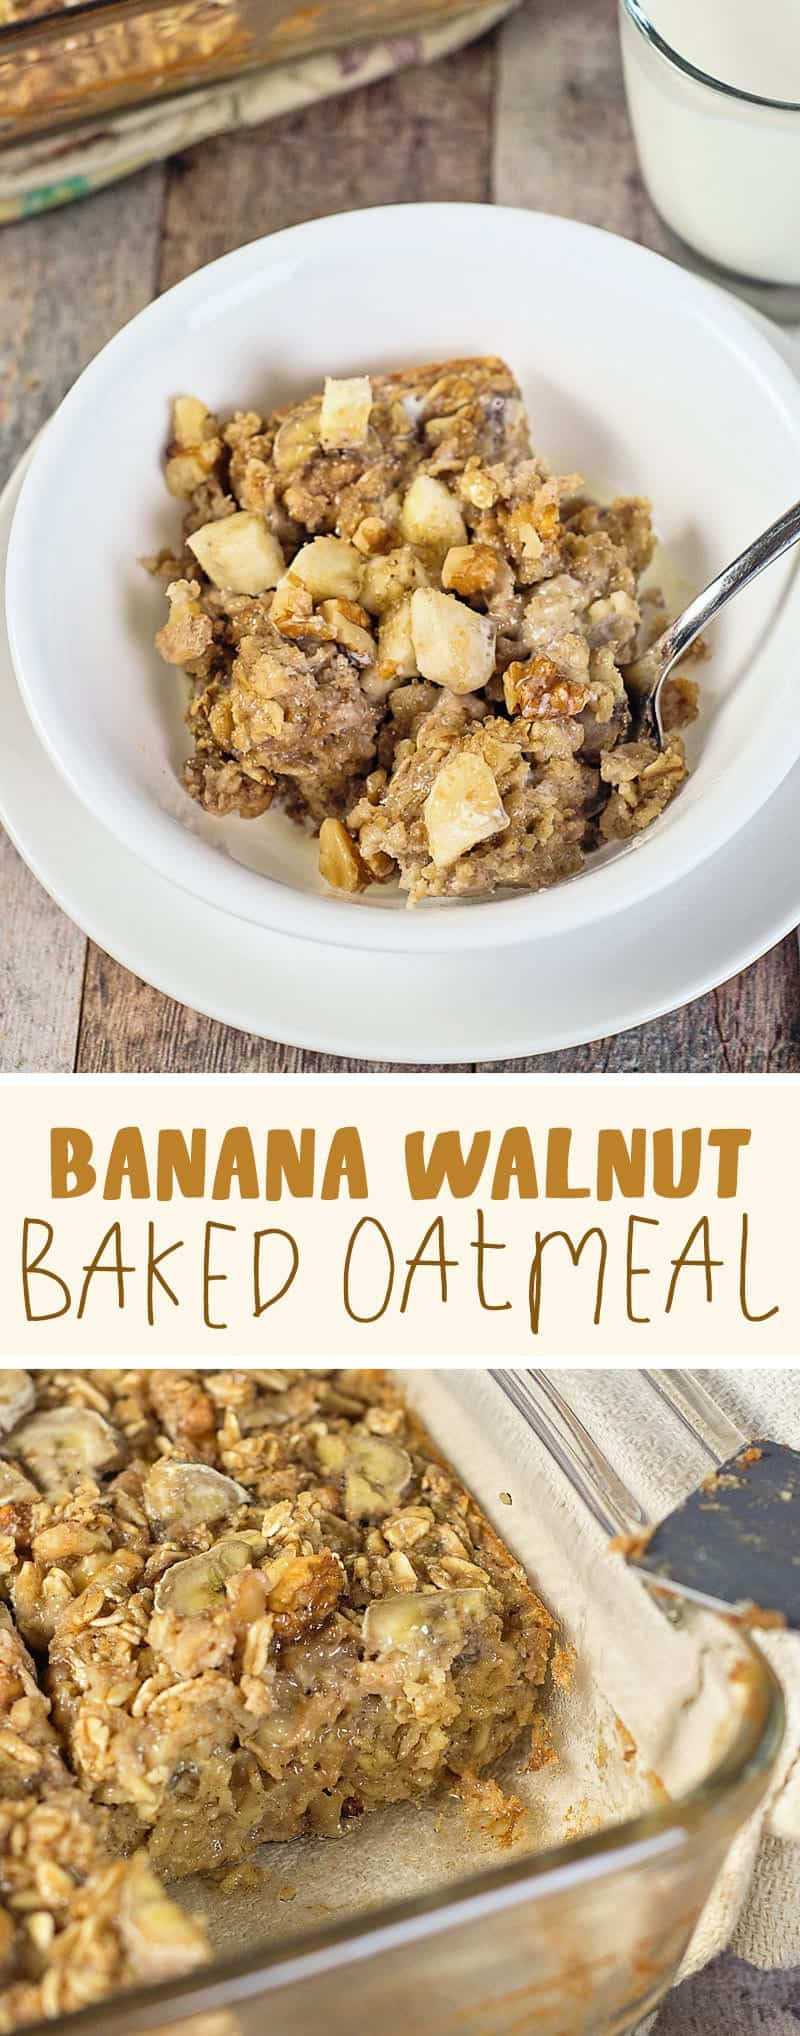 Bananas, walnuts, and cinnamon combine to give this Banana Walnut Baked Oatmeal the delicious taste of banana bread!